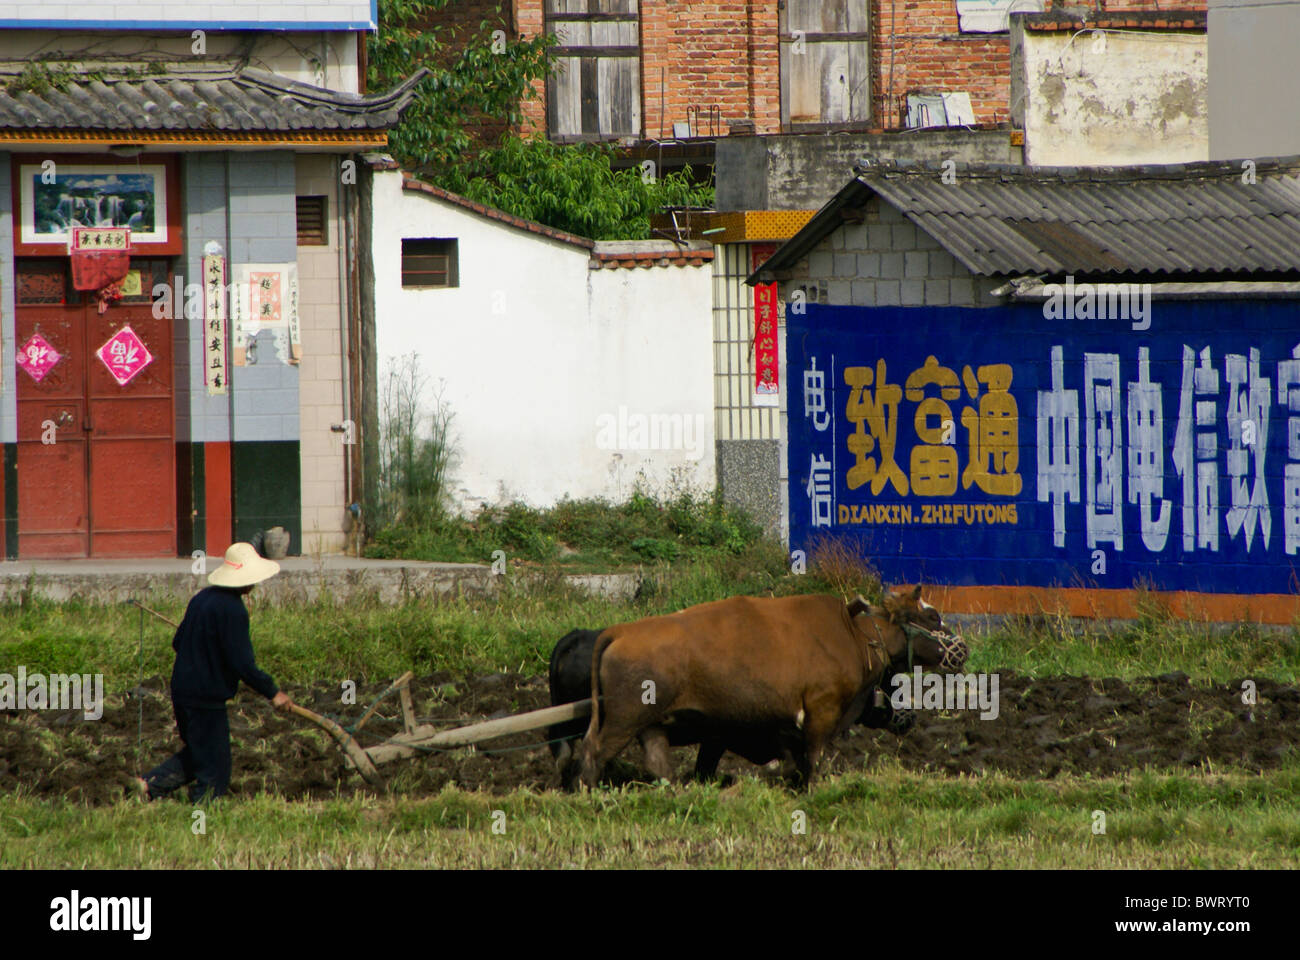 Farmer plowing field with cattle, Xizhou, Yunnan, China - Stock Image